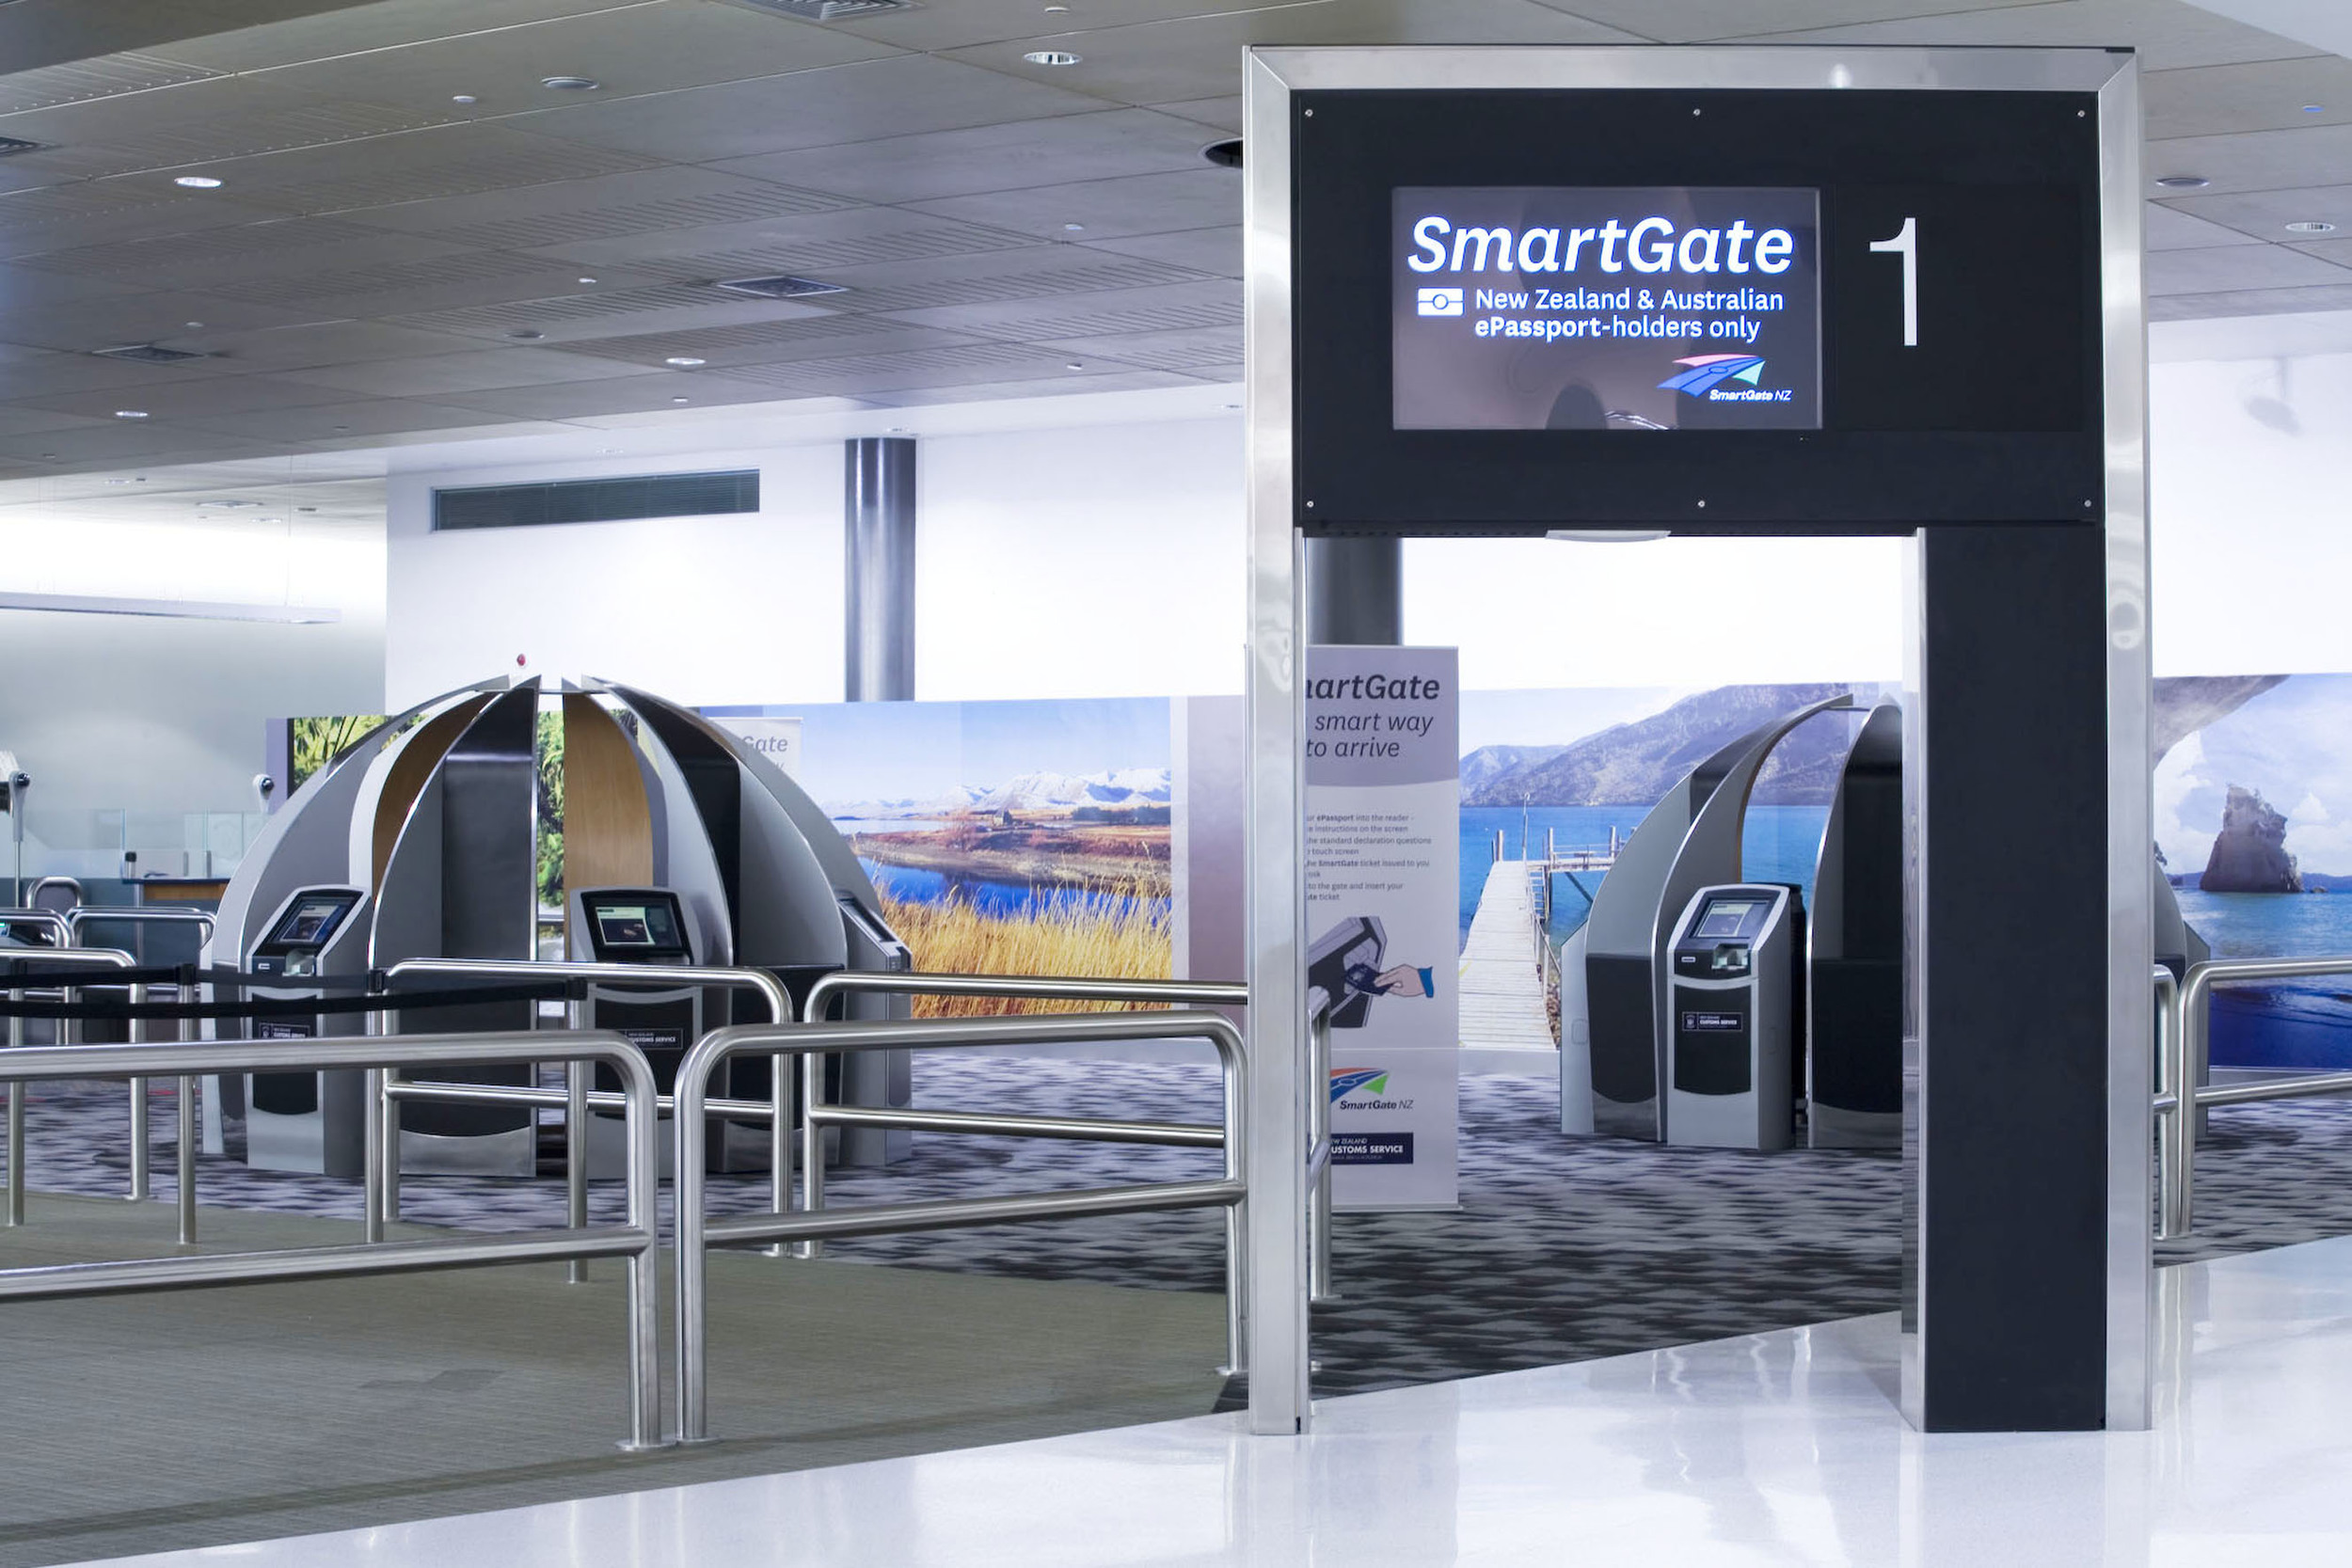 Auckland International Airport   Smart Gate   S&T's design included the installation of the country's first automated border processing system. Developed by NZ's Customs Service, 'Smart Gate' processes passengers arriving in Australia or New Zealand.